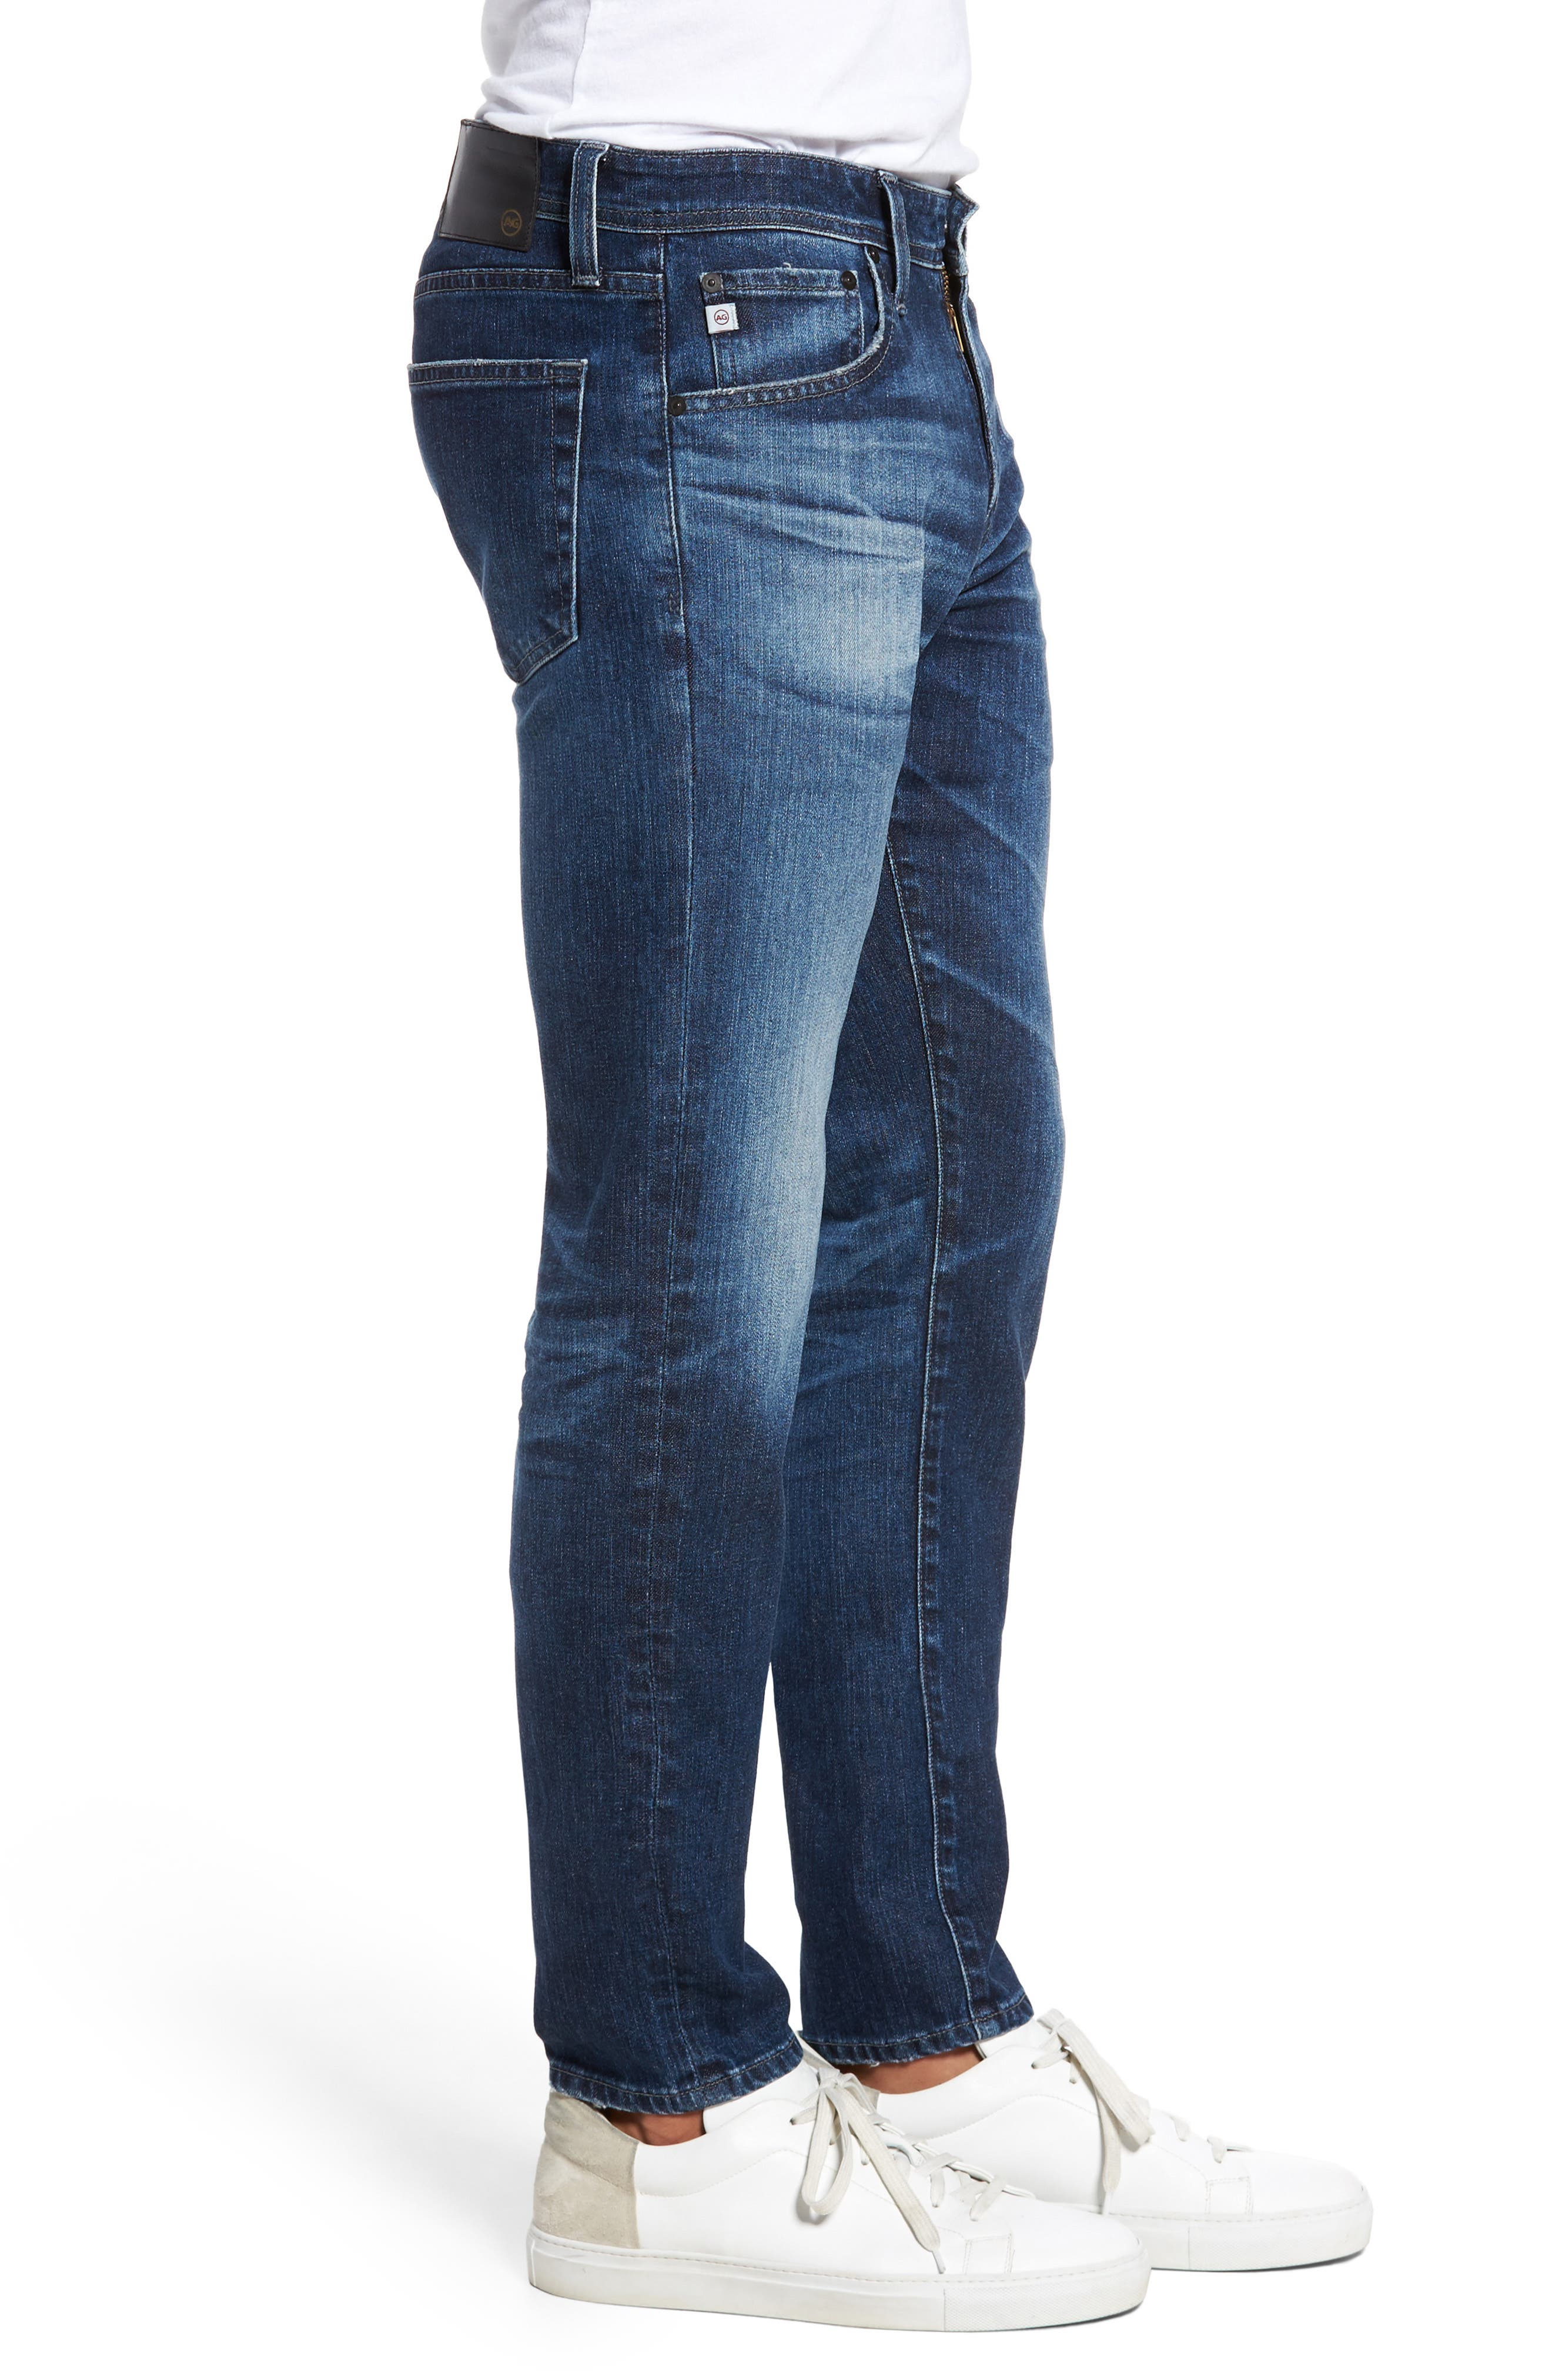 Stockton Skinny Fit Jeans,                             Alternate thumbnail 3, color,                             7 Years Blue Spire